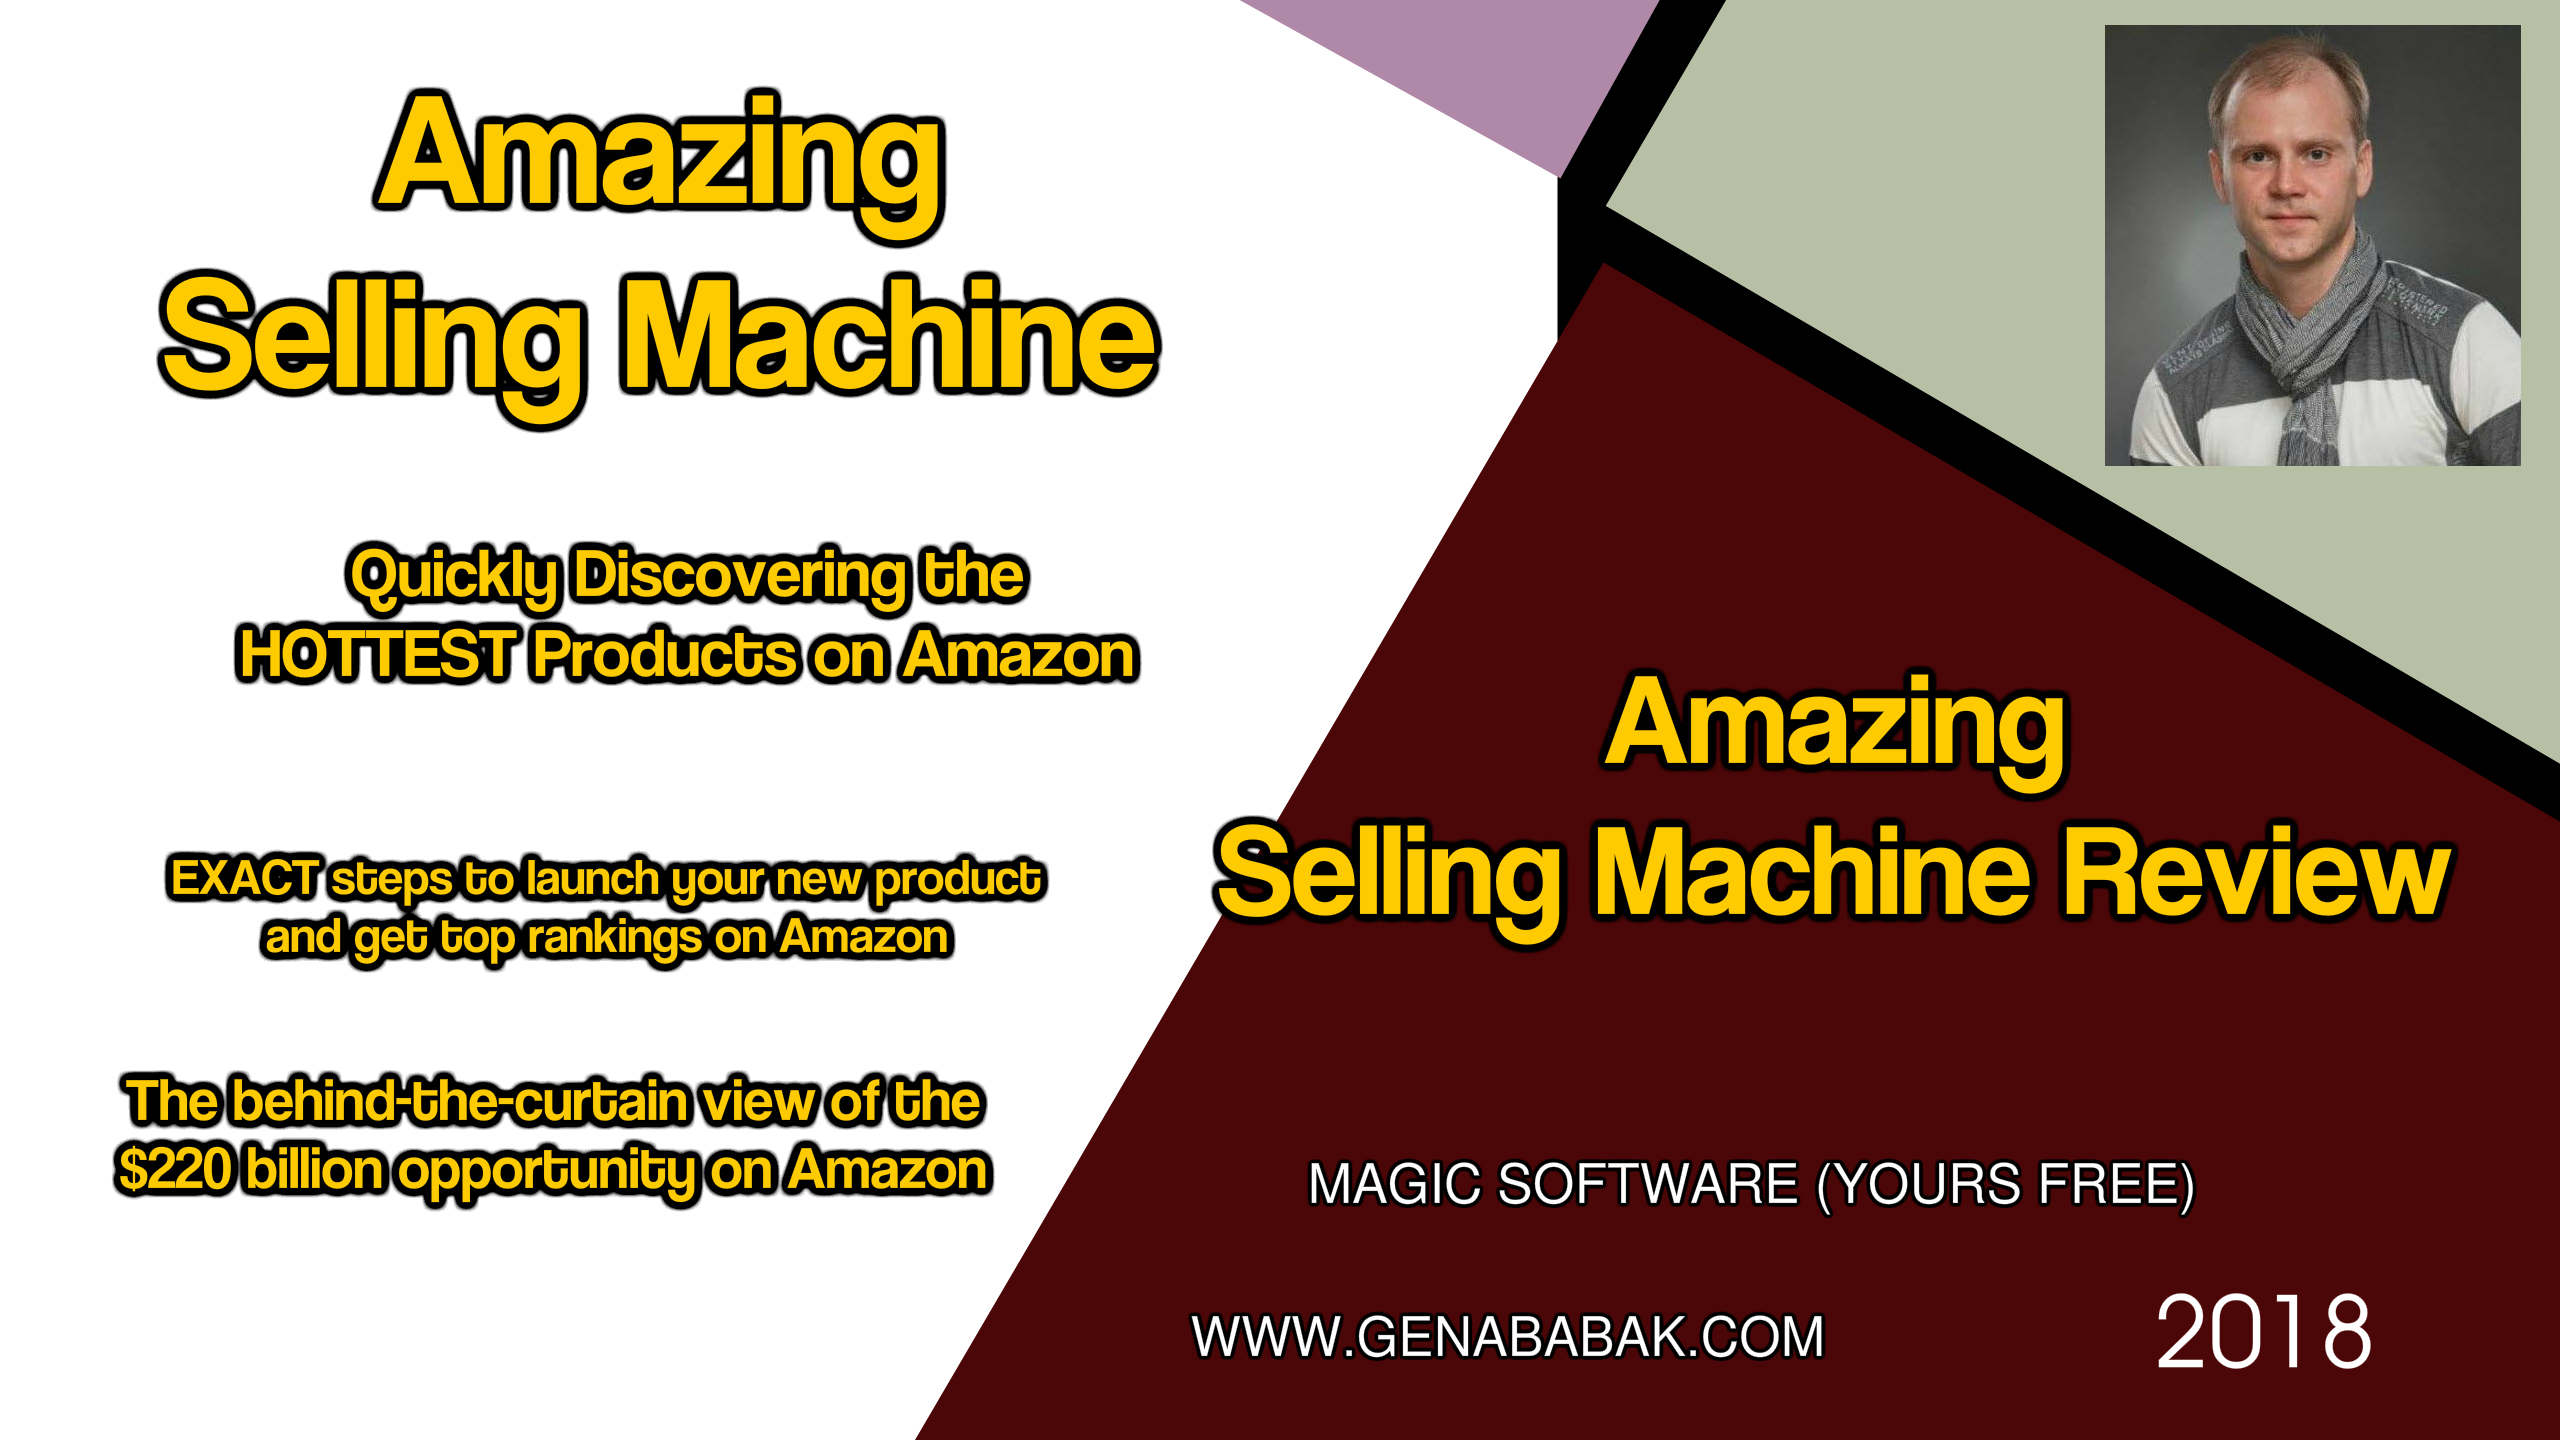 The ASM Amazing Selling Machine Review